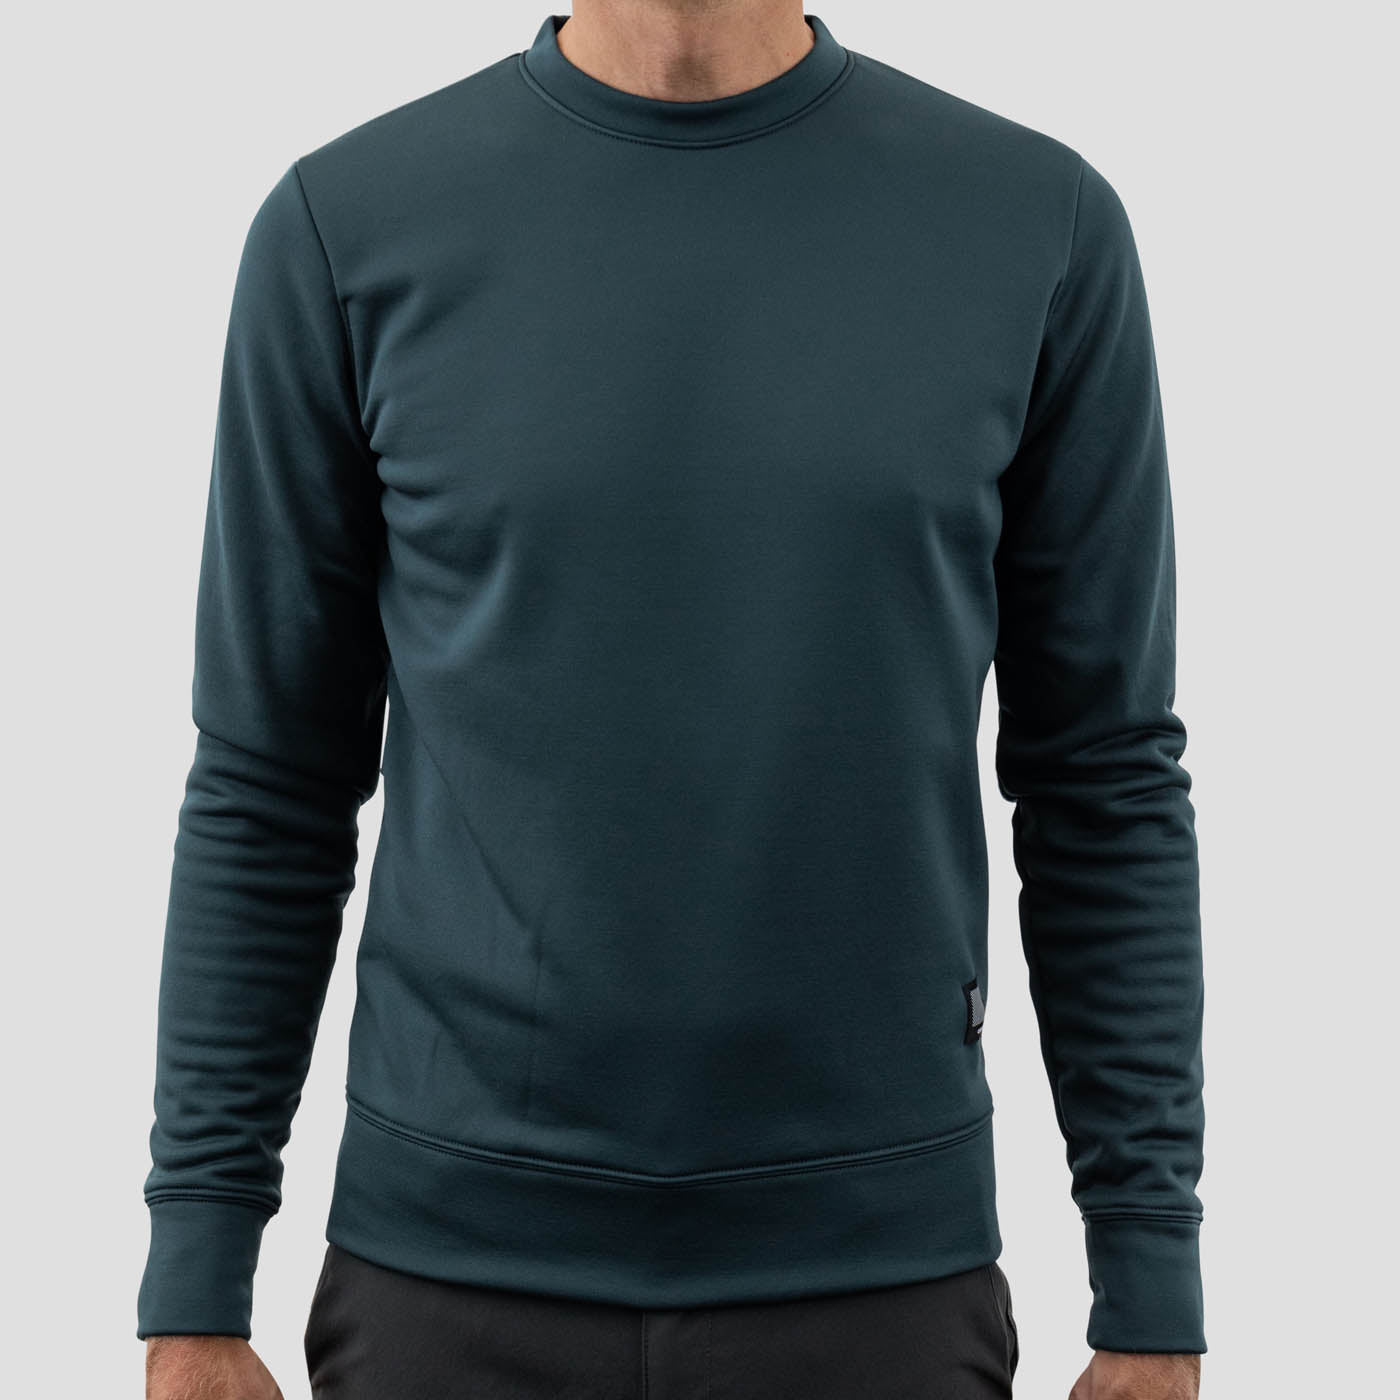 Merino Sweatshirt - Stone Blue (Xs Only)